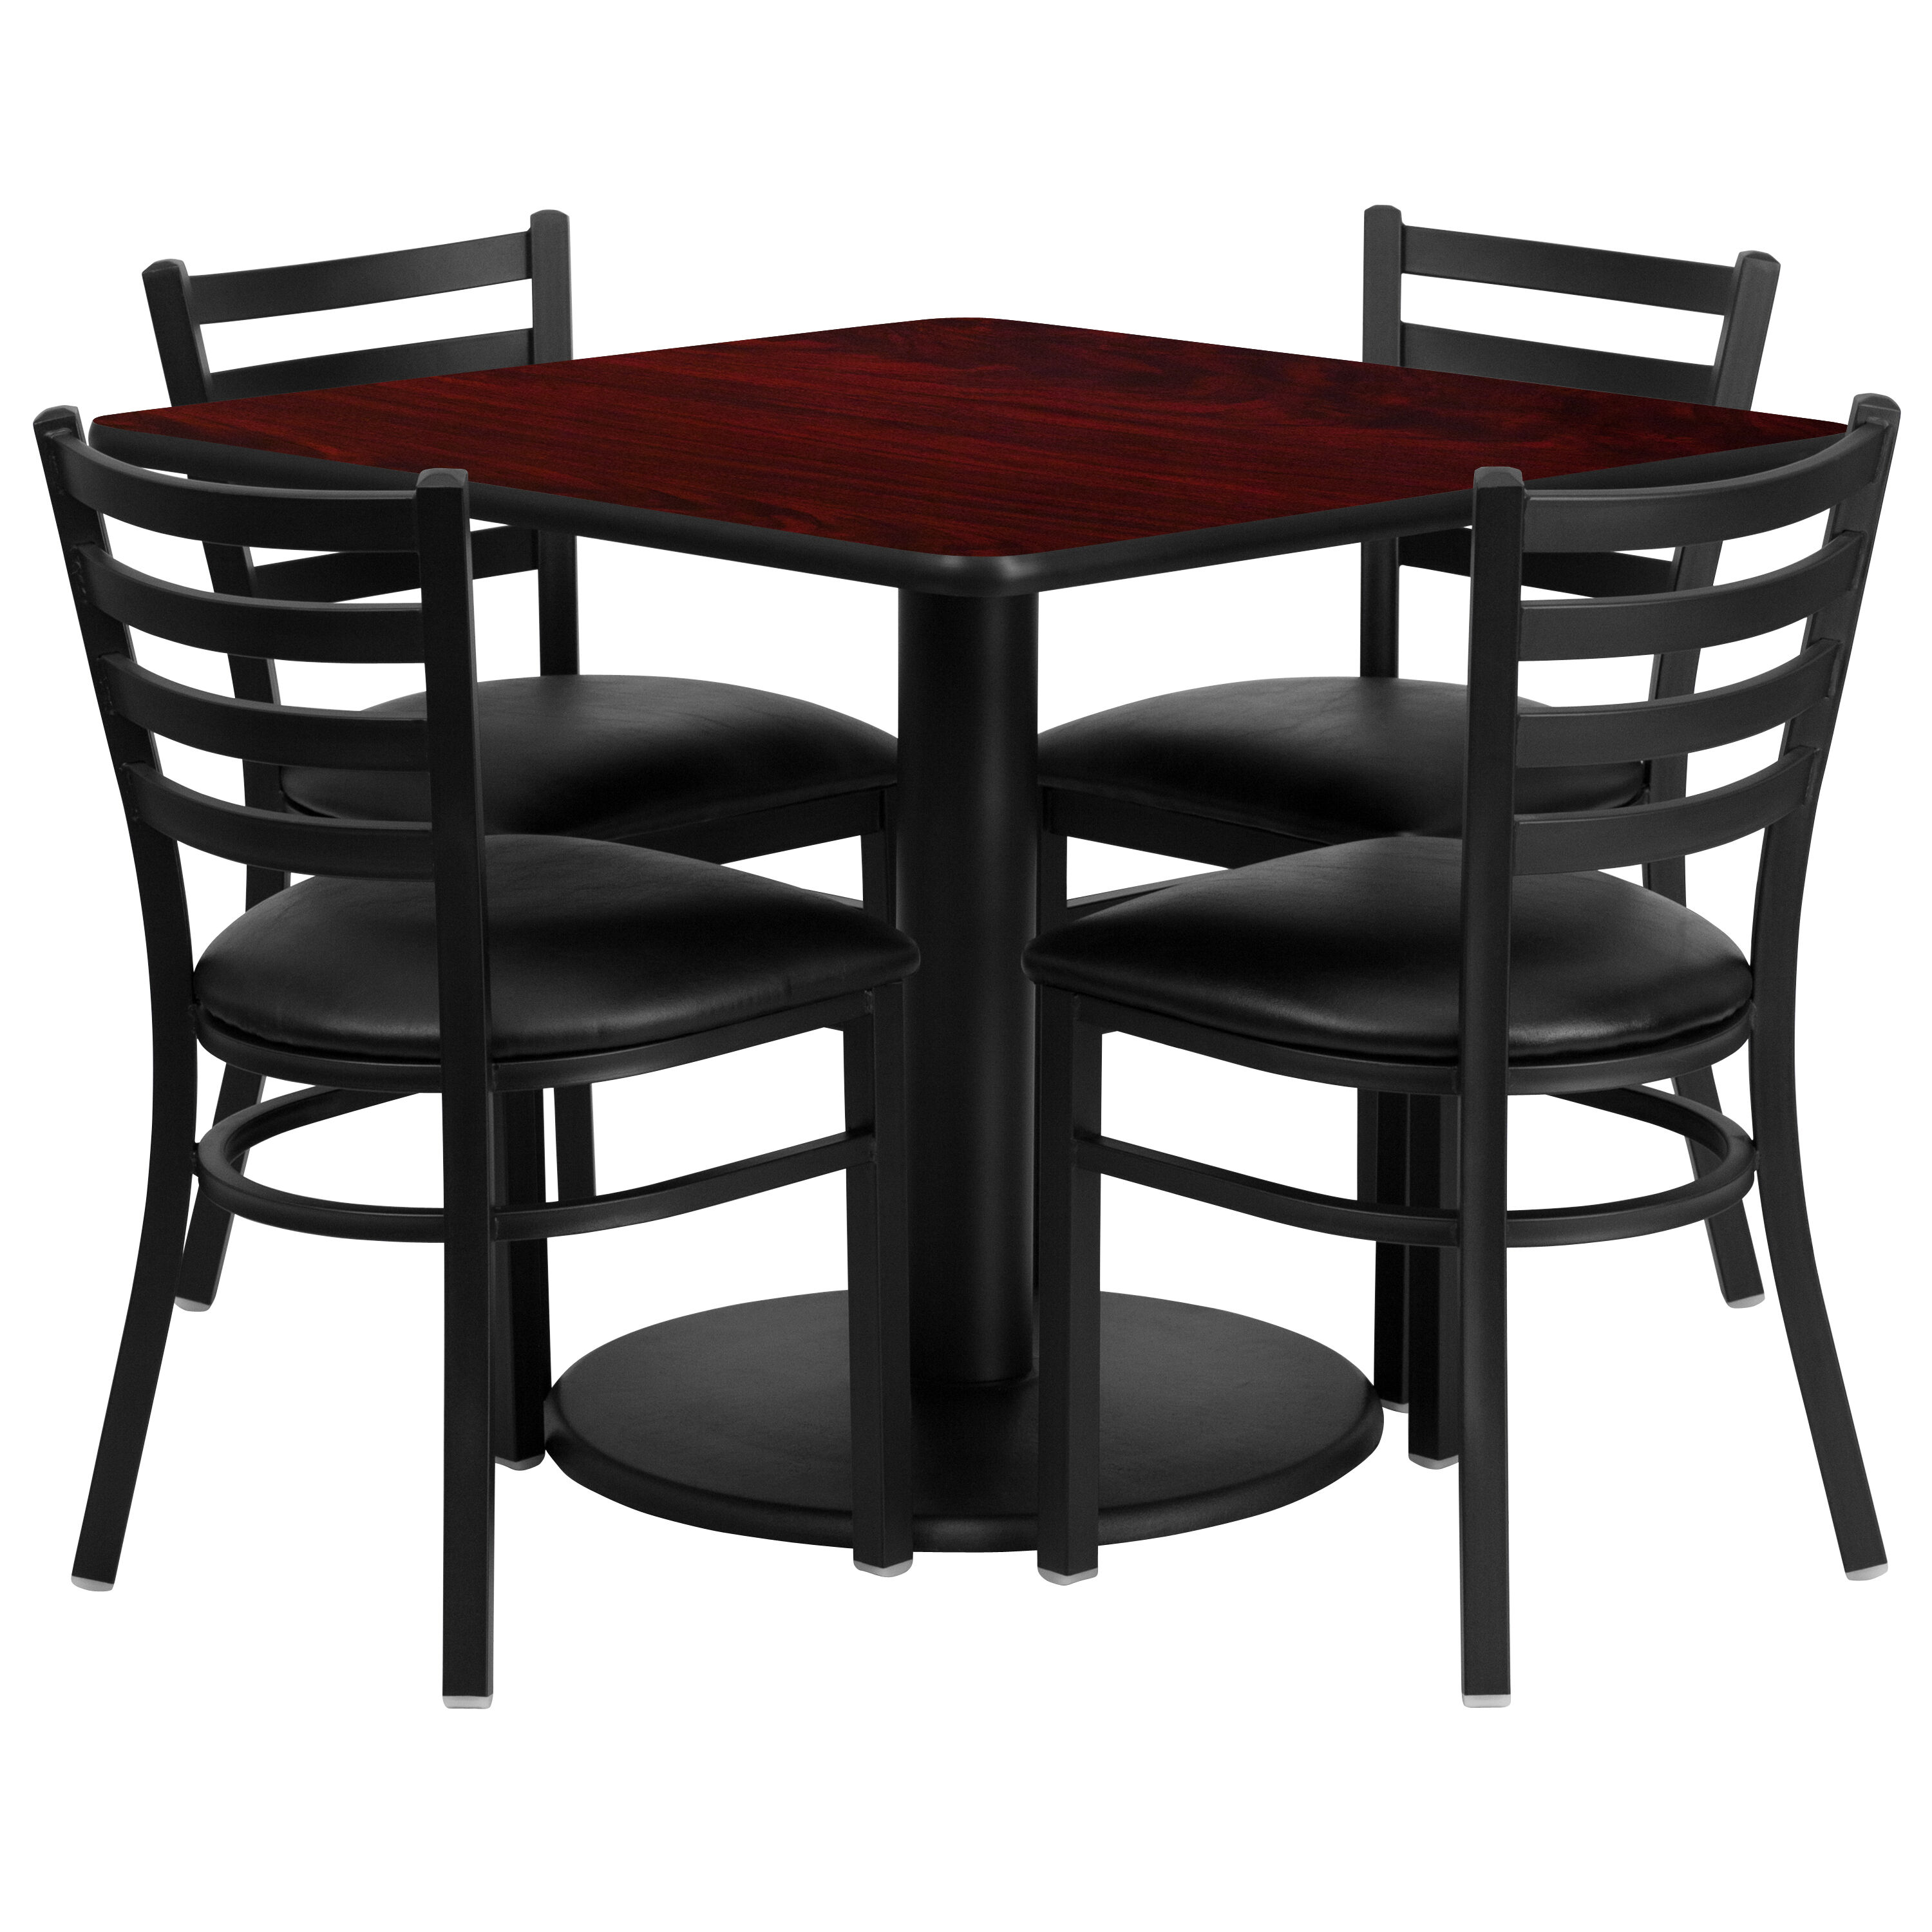 metal chairs and table chair cover rentals montgomery al restaurantfurniture4less restaurant sets 36 square mahogany laminate set with round base 4 ladder back black vinyl seat